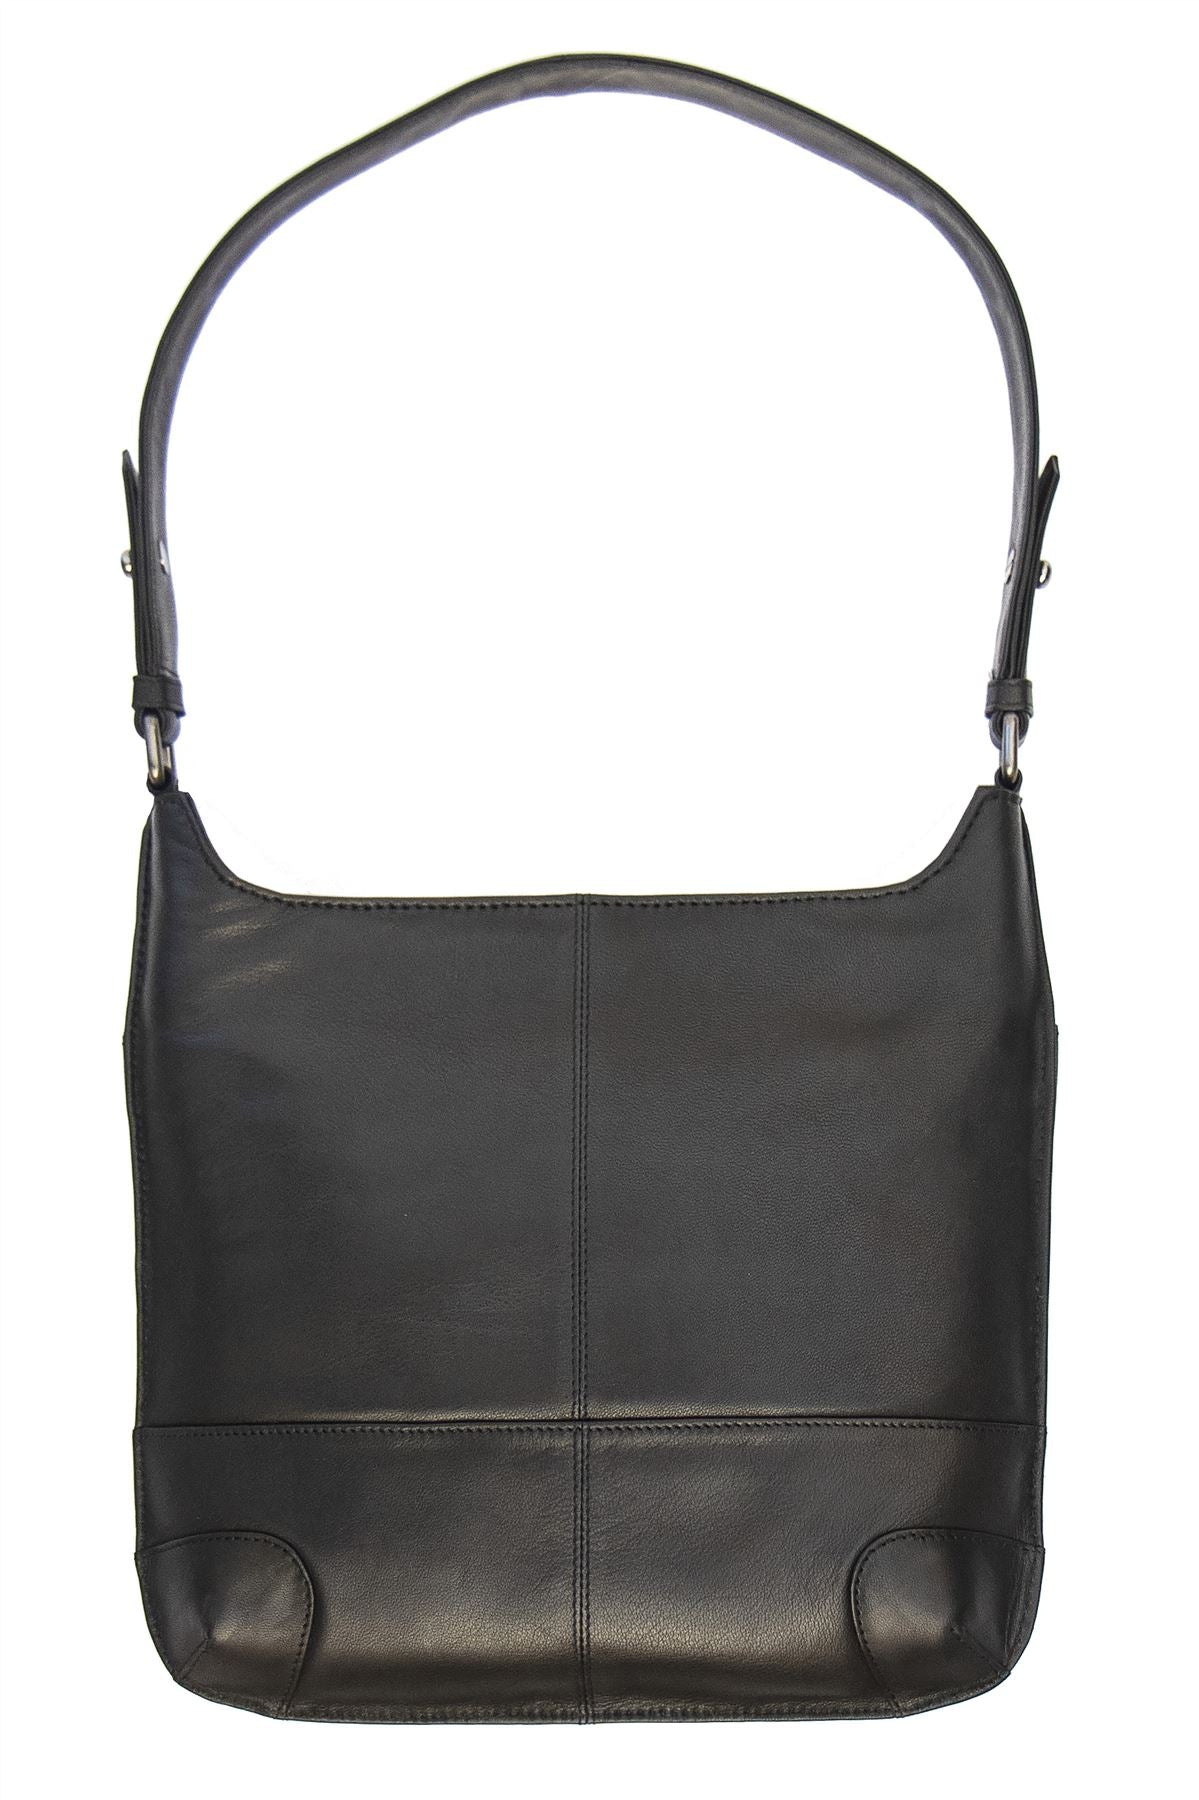 Texan Leather Handbag - 842